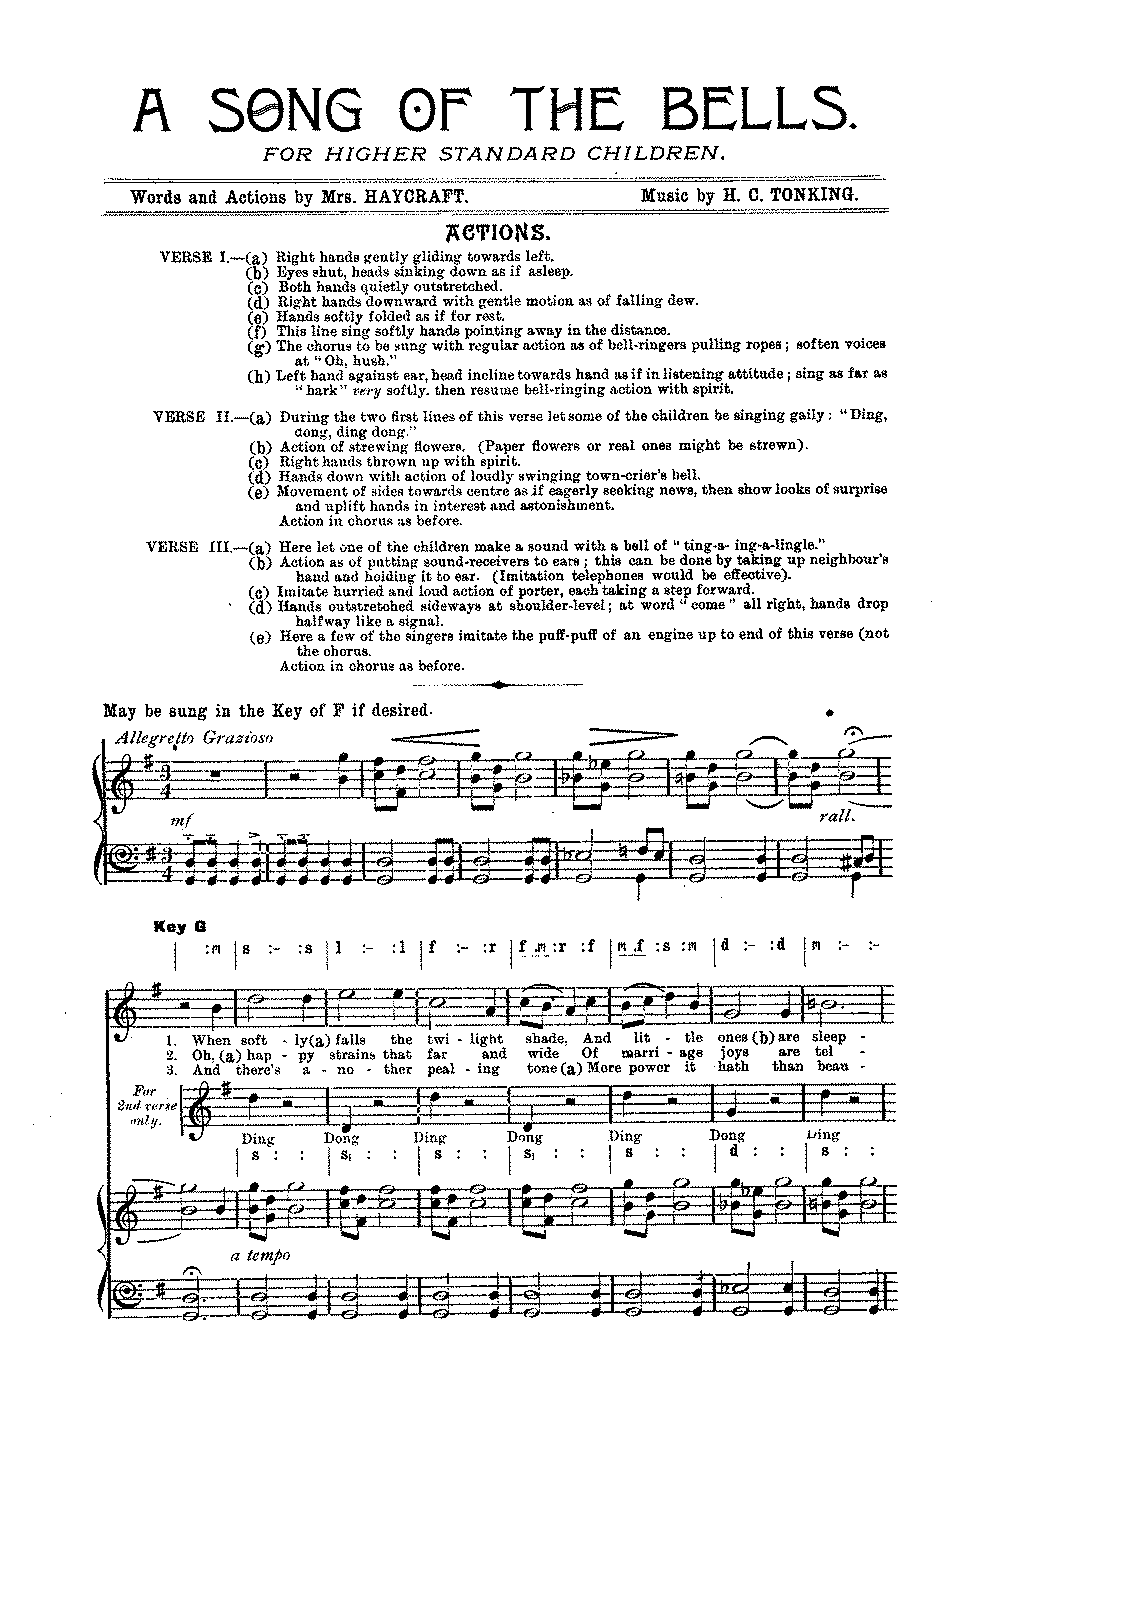 PMLP506467-A Song of the Bells IMSLP.pdf